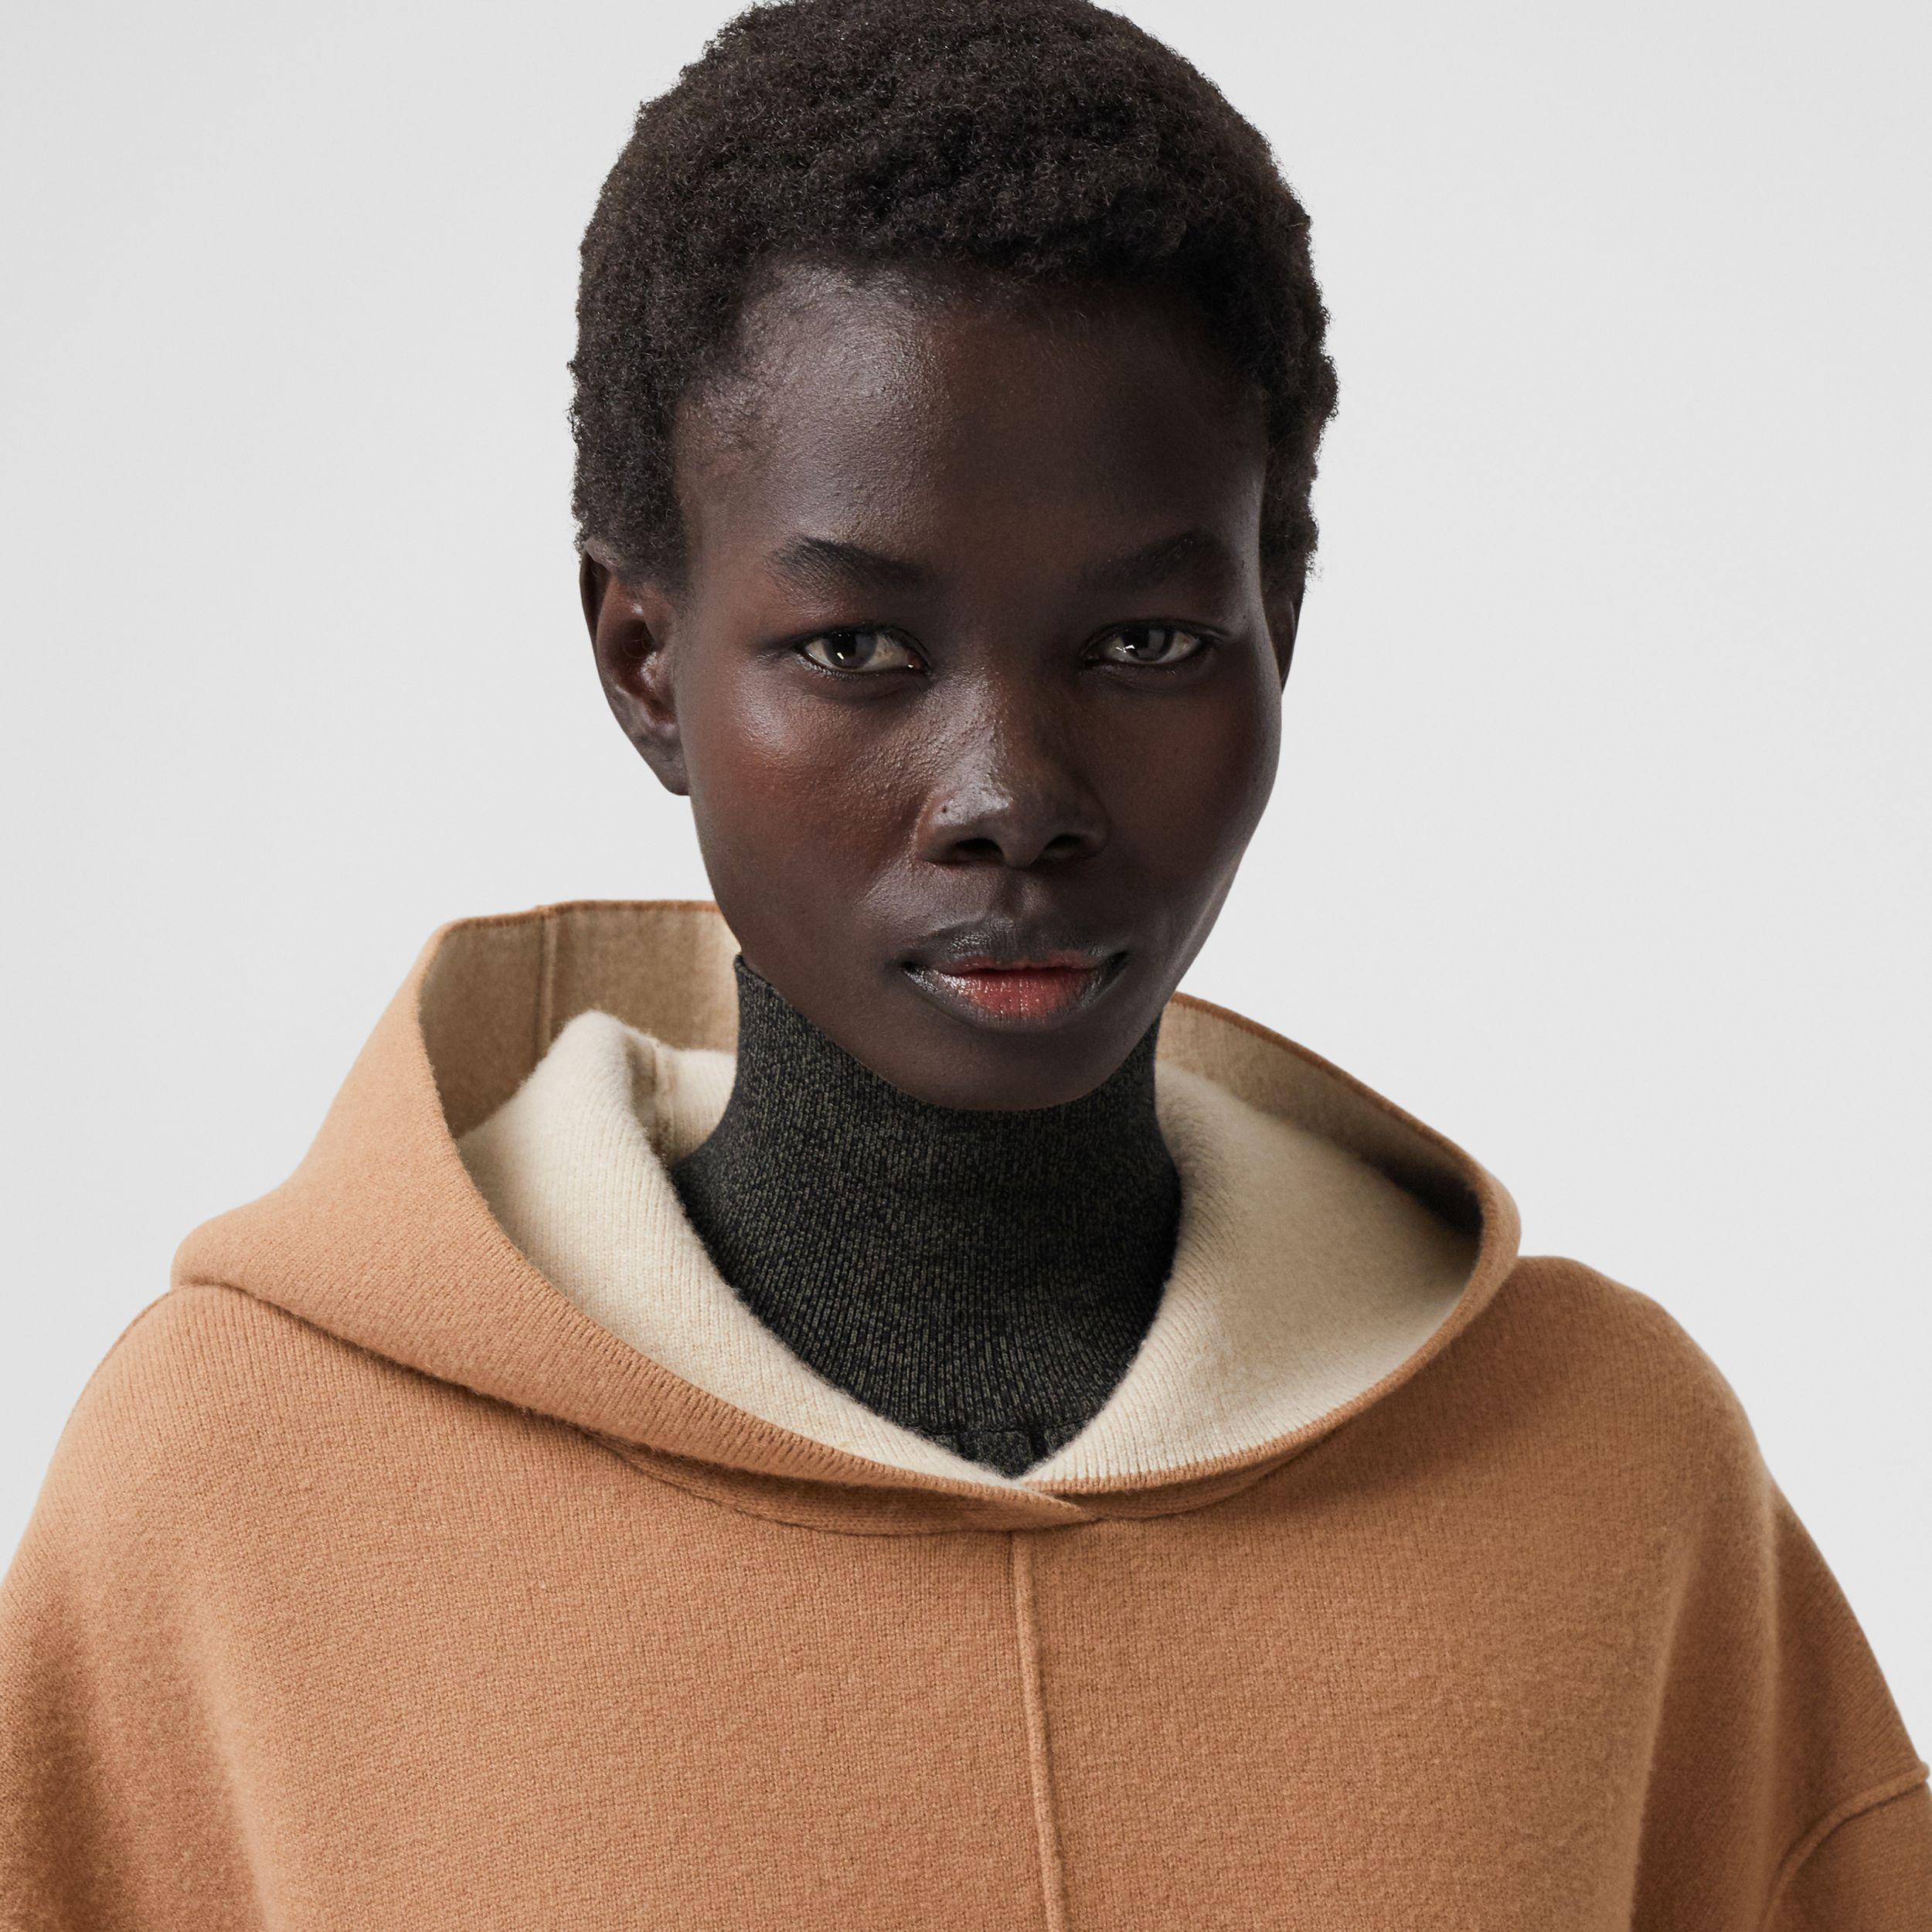 Double-faced Merino Wool Cashmere Blend Hoodie in Warm Camel - Women | Burberry Canada - 2